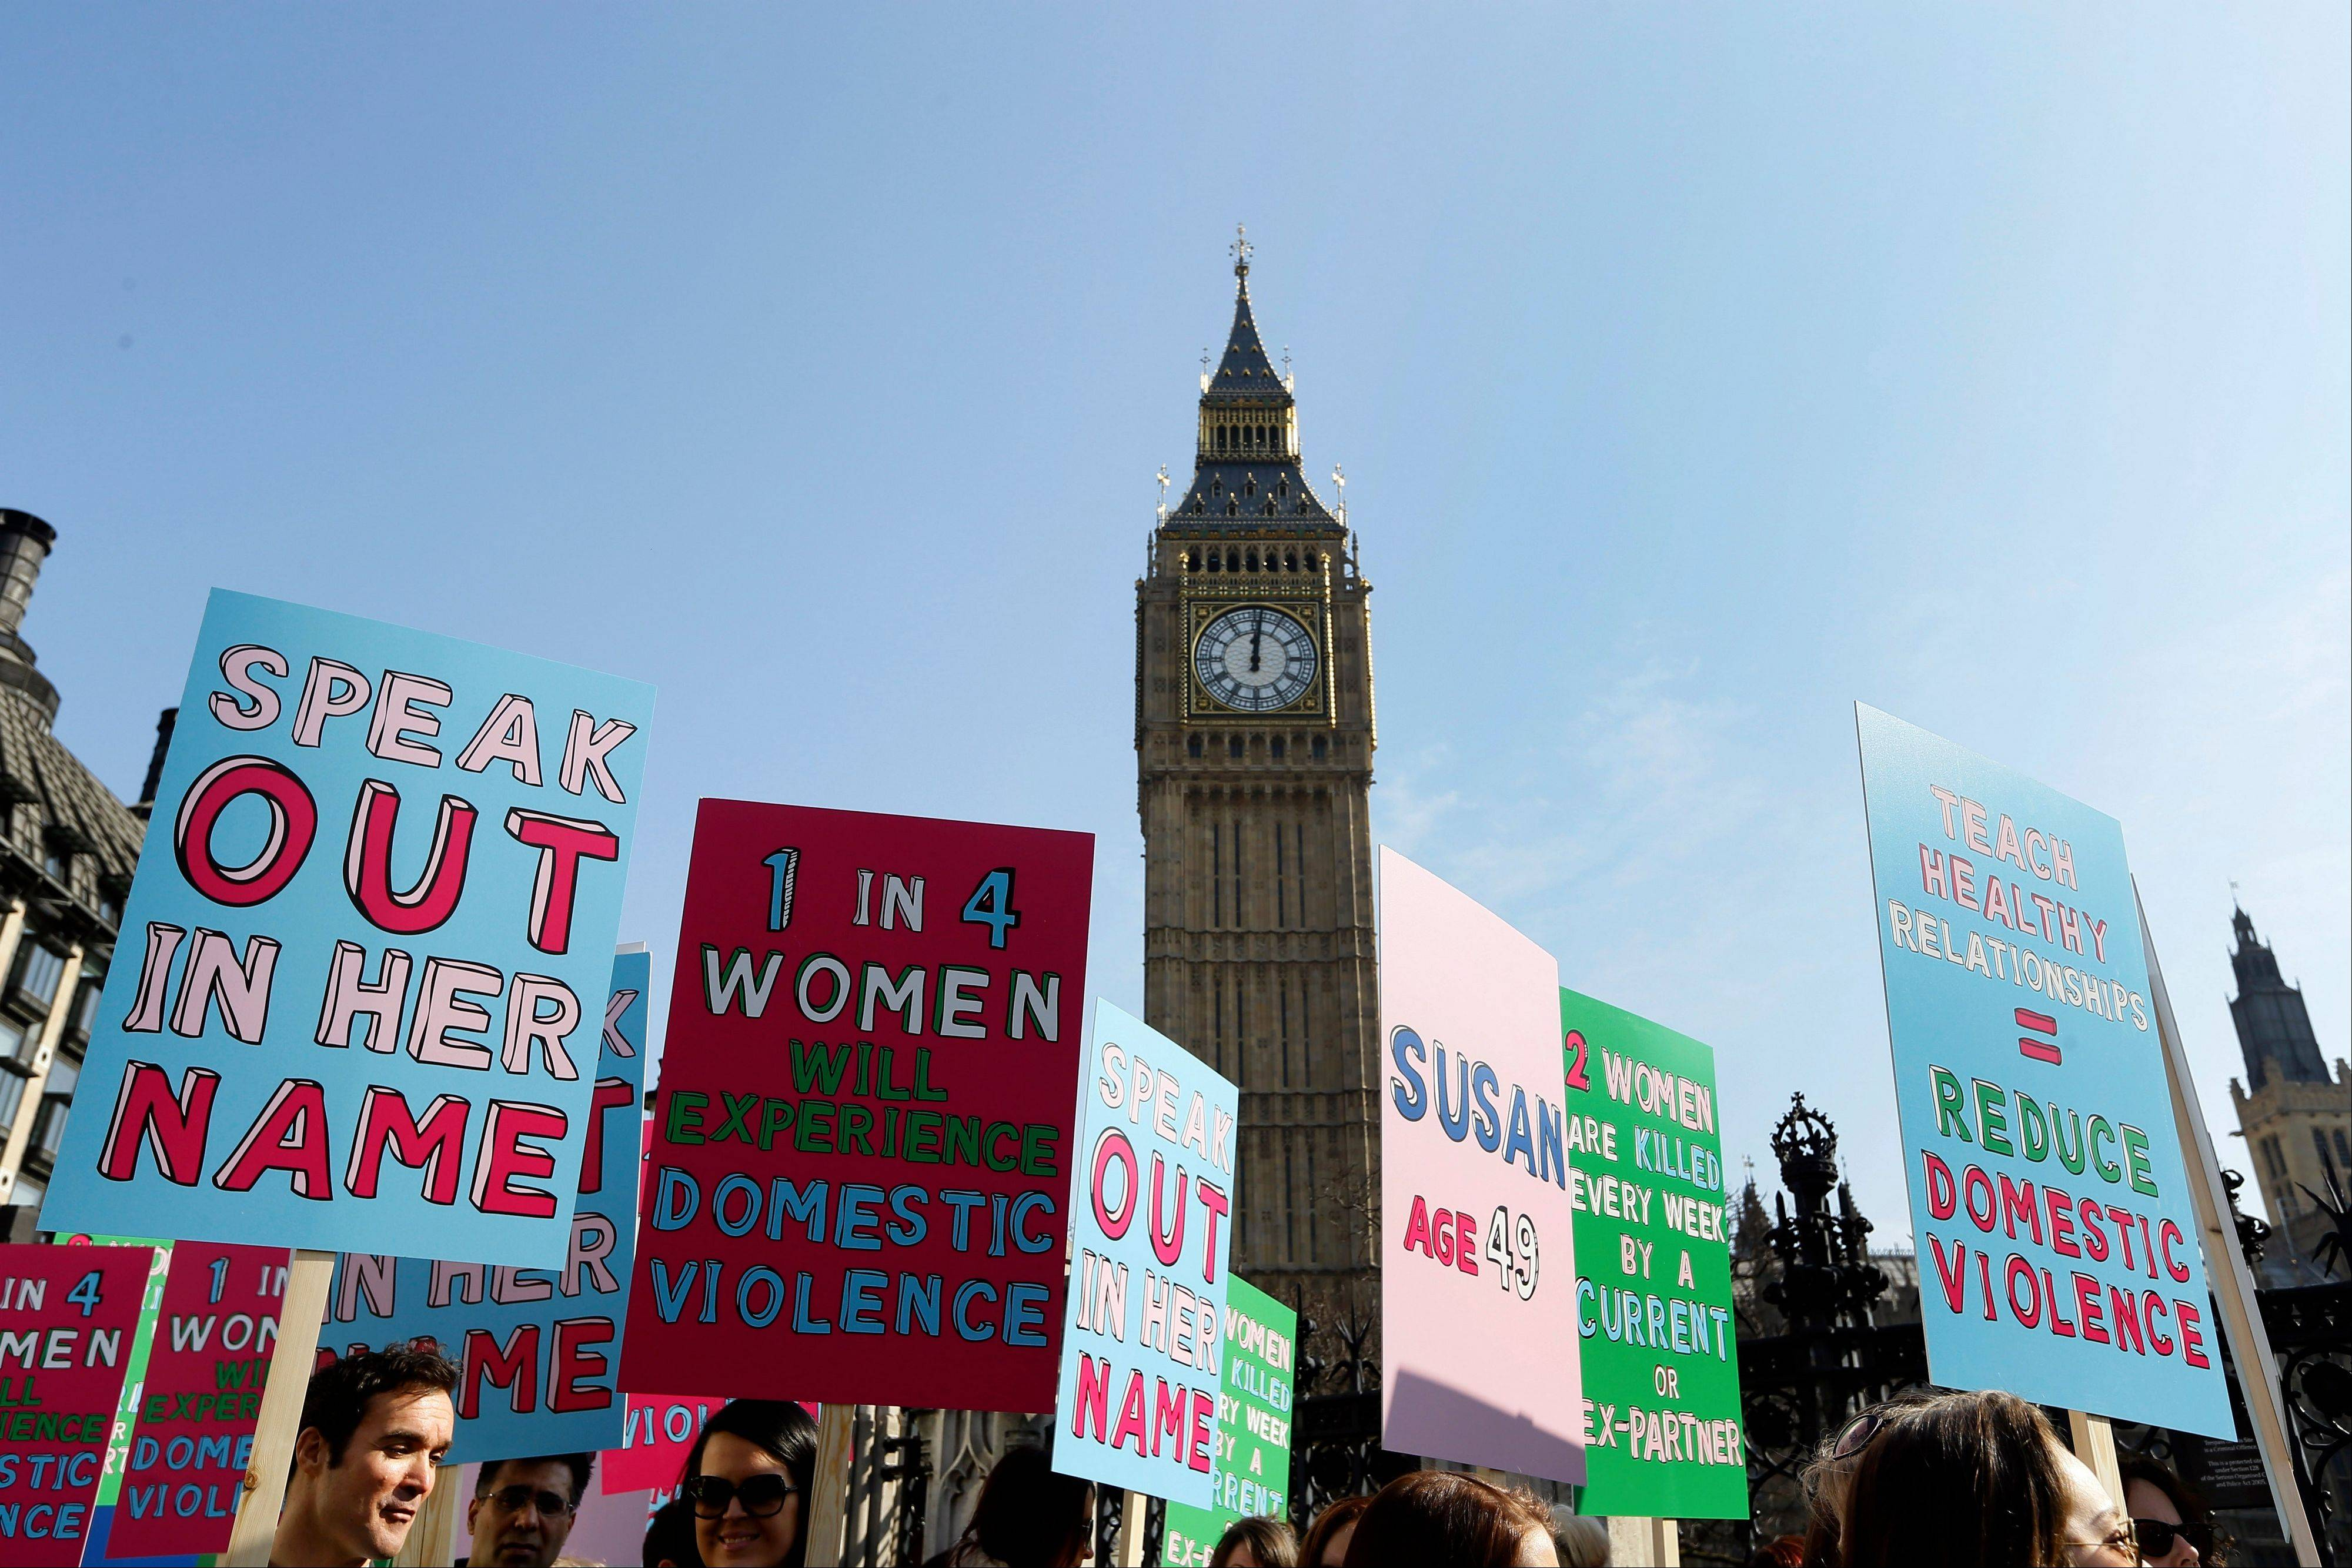 People hold banners during a demonstration against domestic violence near Big Ben in London, in the lead up to International Women�s Day. About a third of women worldwide have been physically or sexually assaulted by a former or current partner, according to the first major review of violence against women.